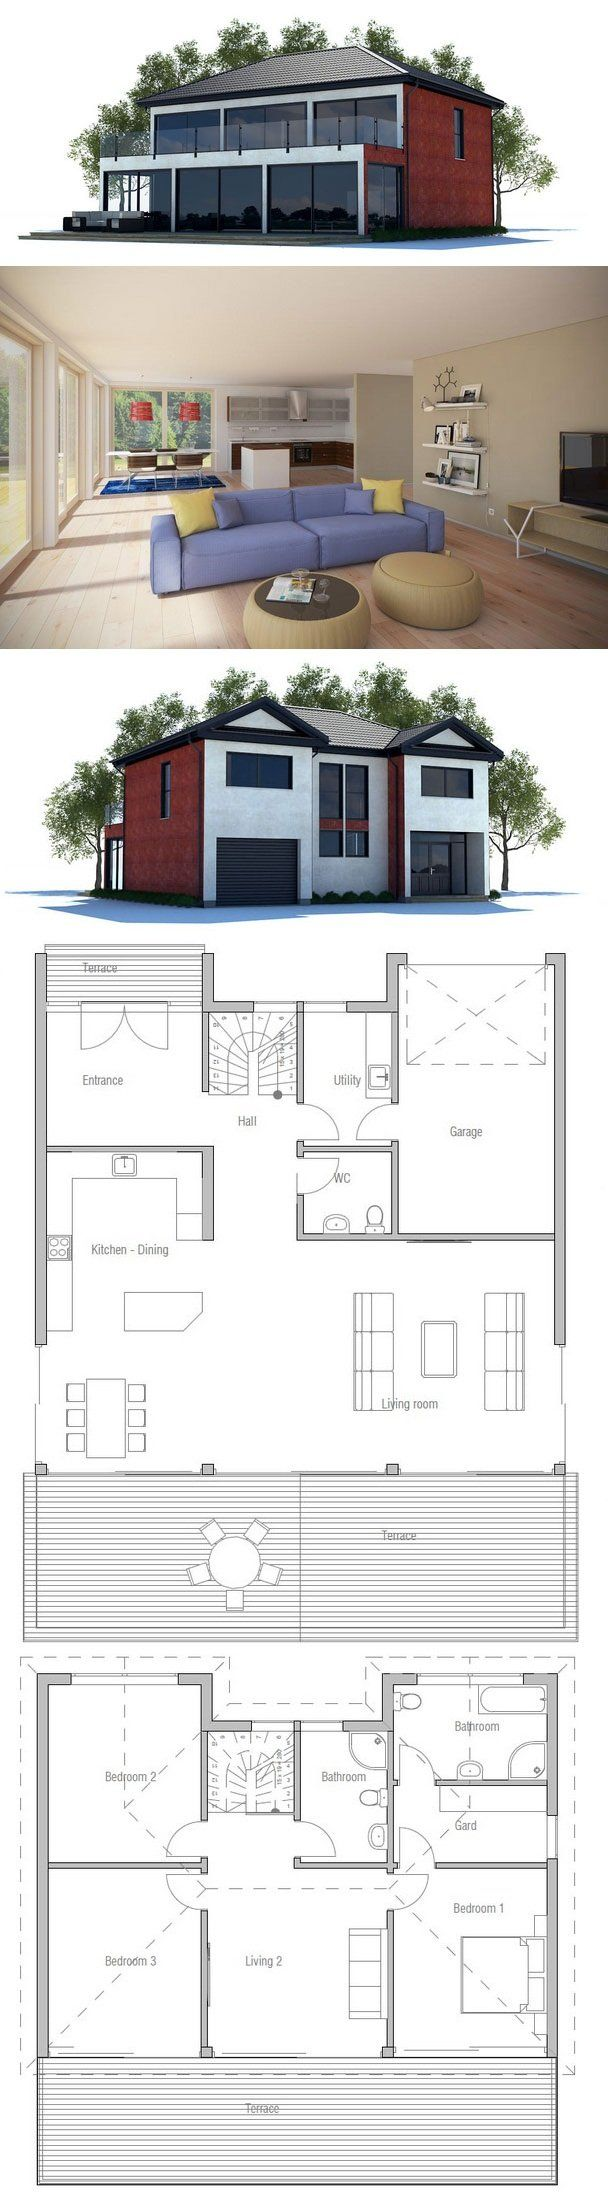 Find this pin and more on oh my house structurefloorplans